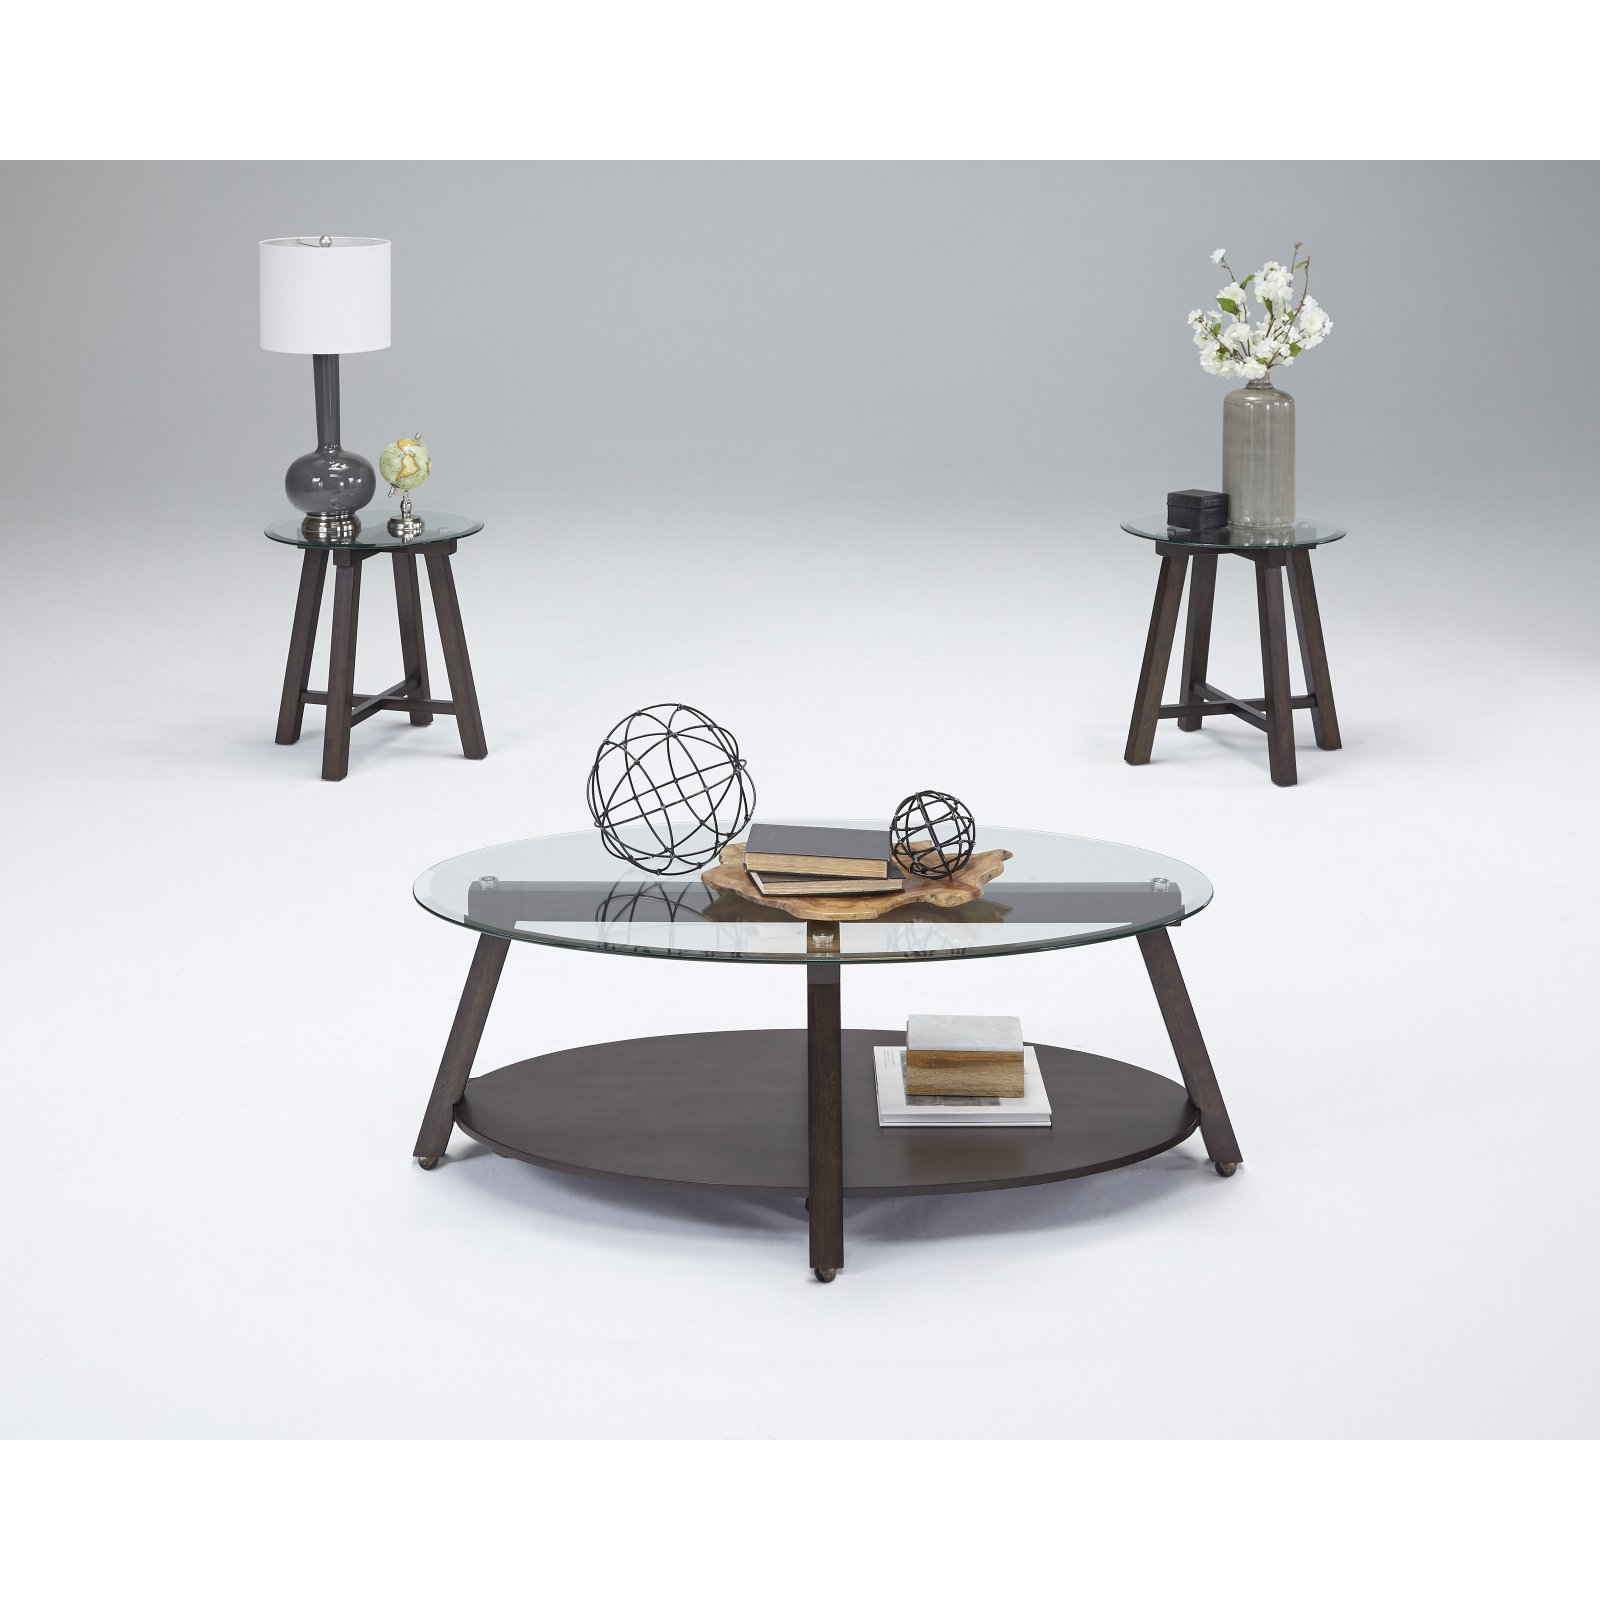 Progressive Furniture Royden 3 Piece Coffee Table Set Products